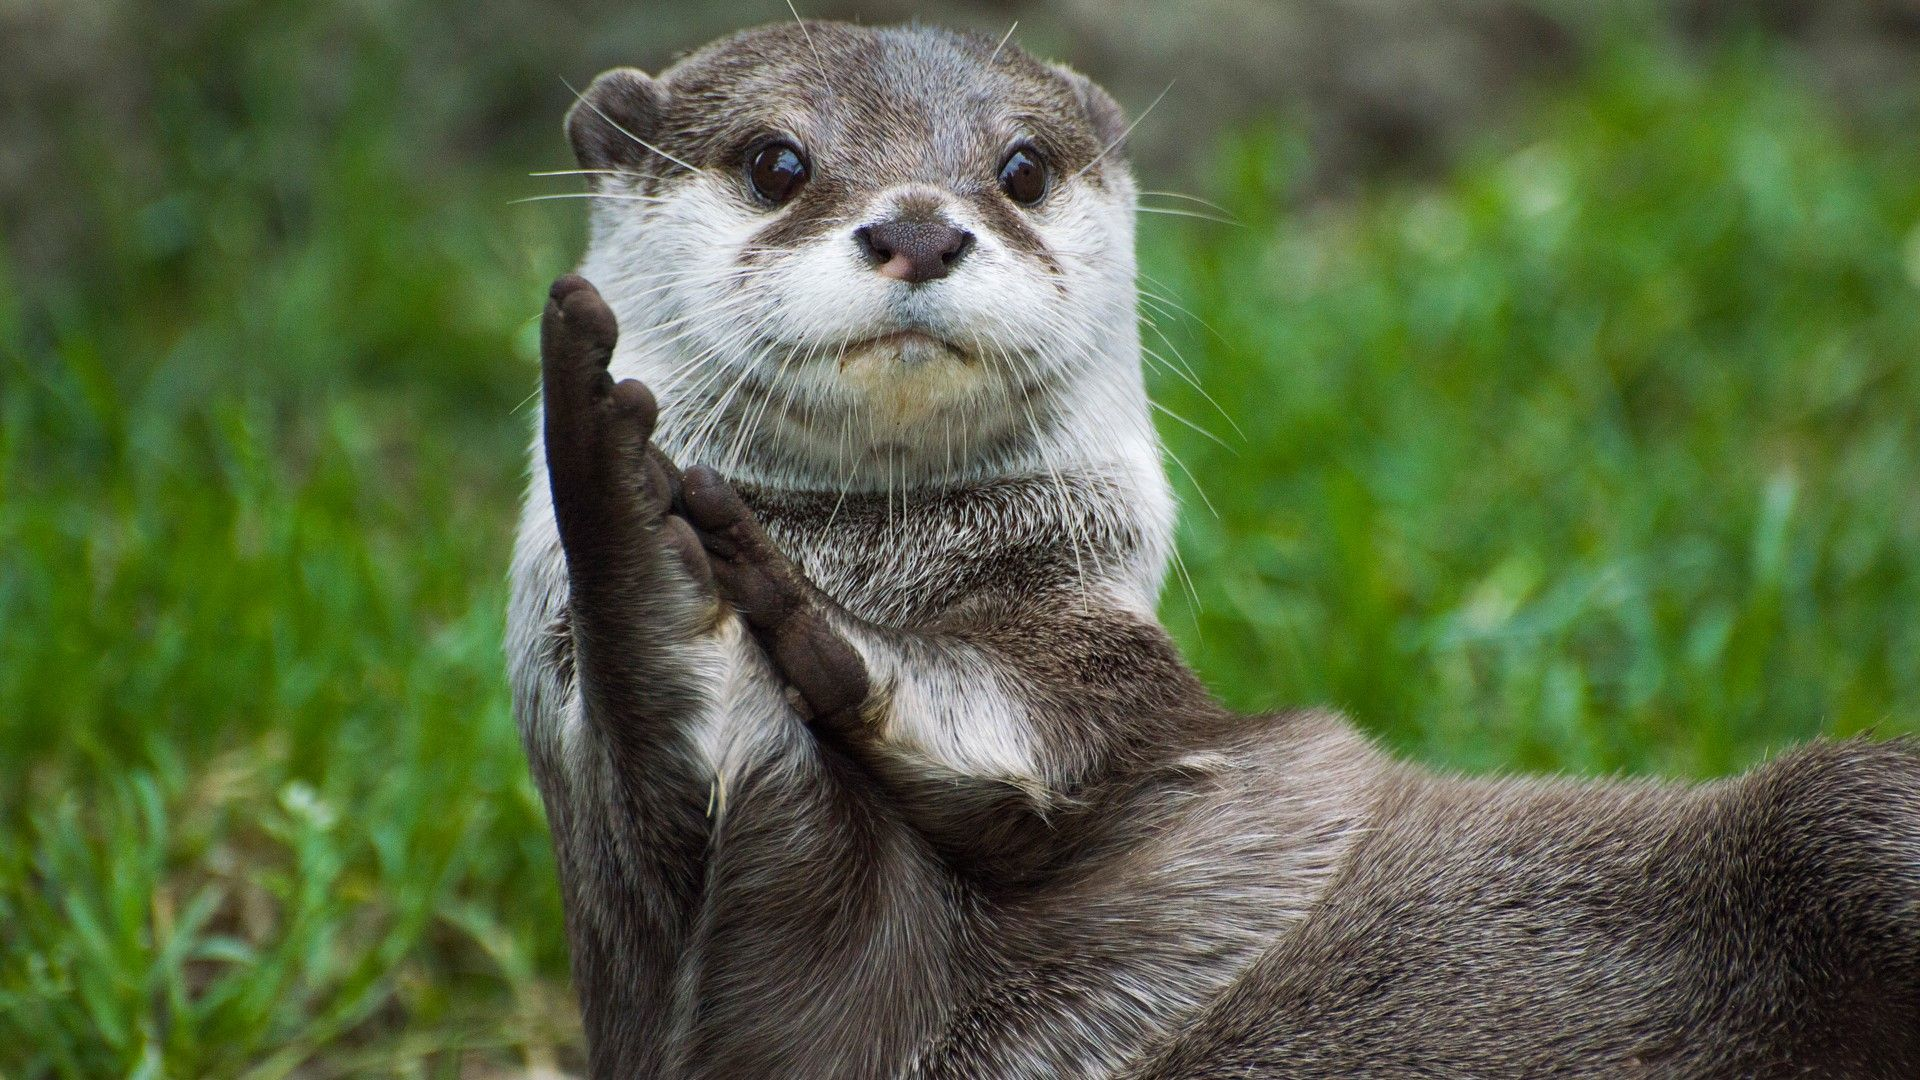 Asian smallclawed otter looking as though it's clapping